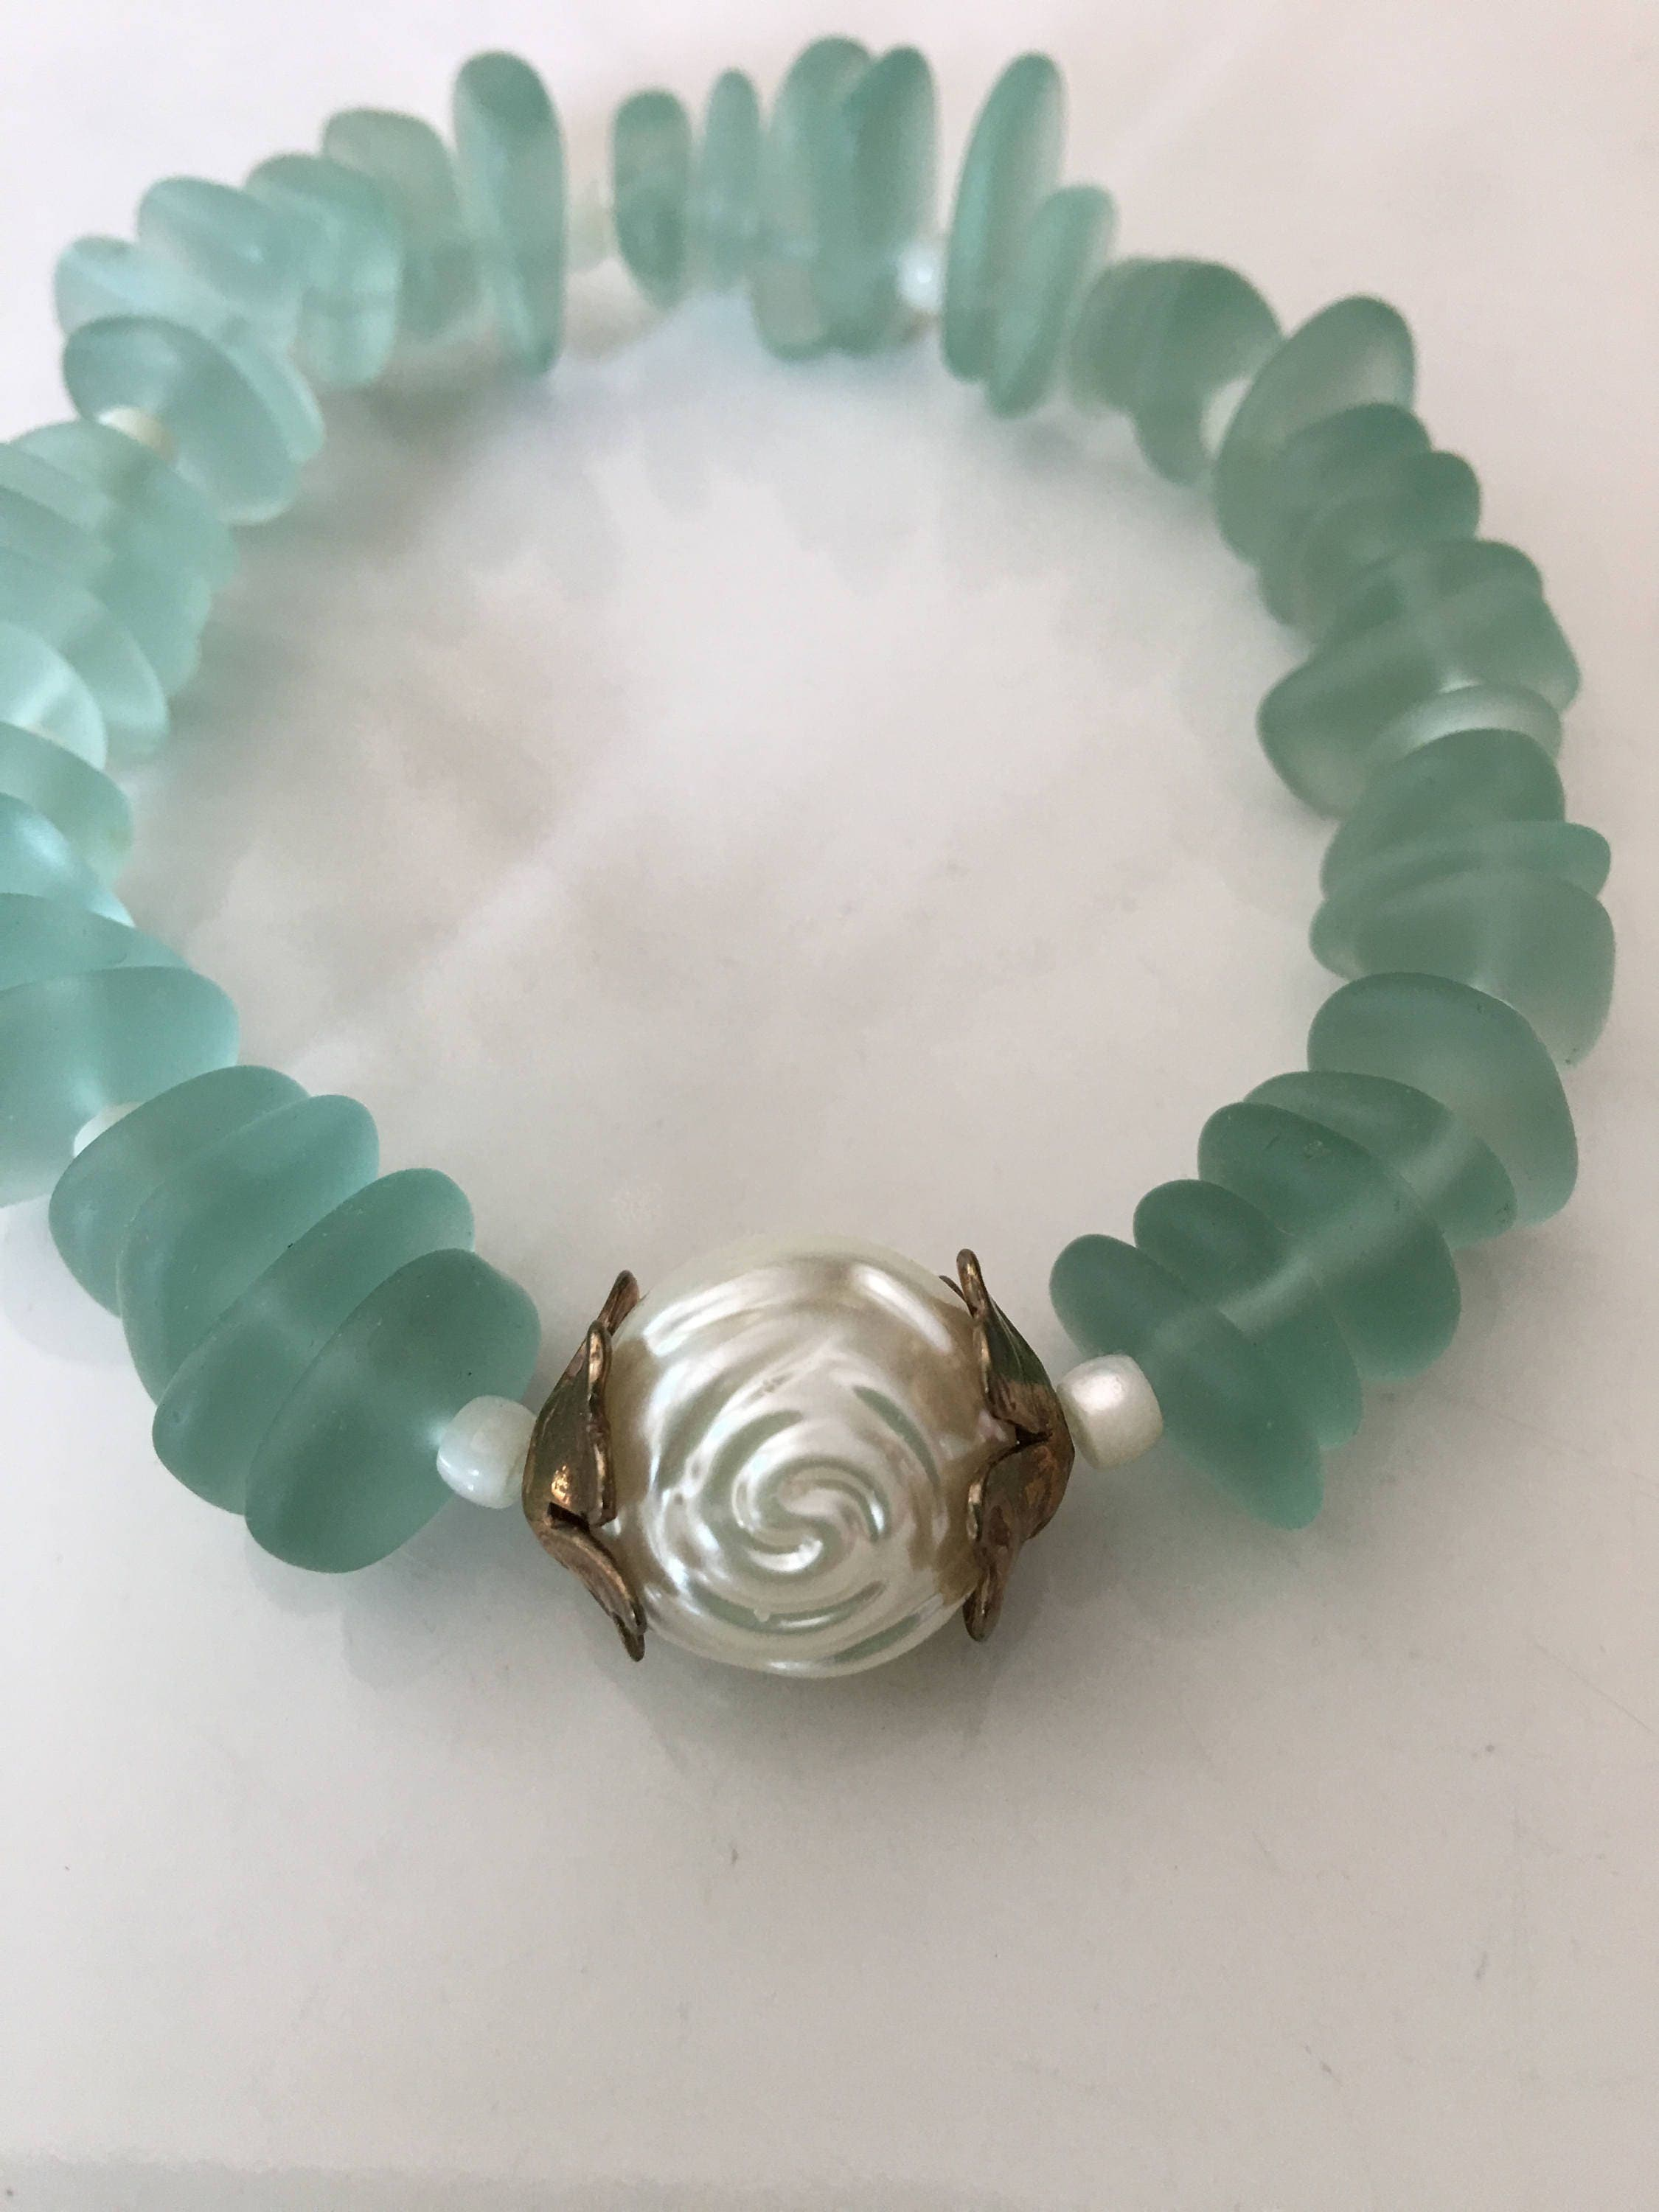 charms ocean this pacific features beachy sea link jewelry styles bracelets img life bracelet glass blues fun colors silver and